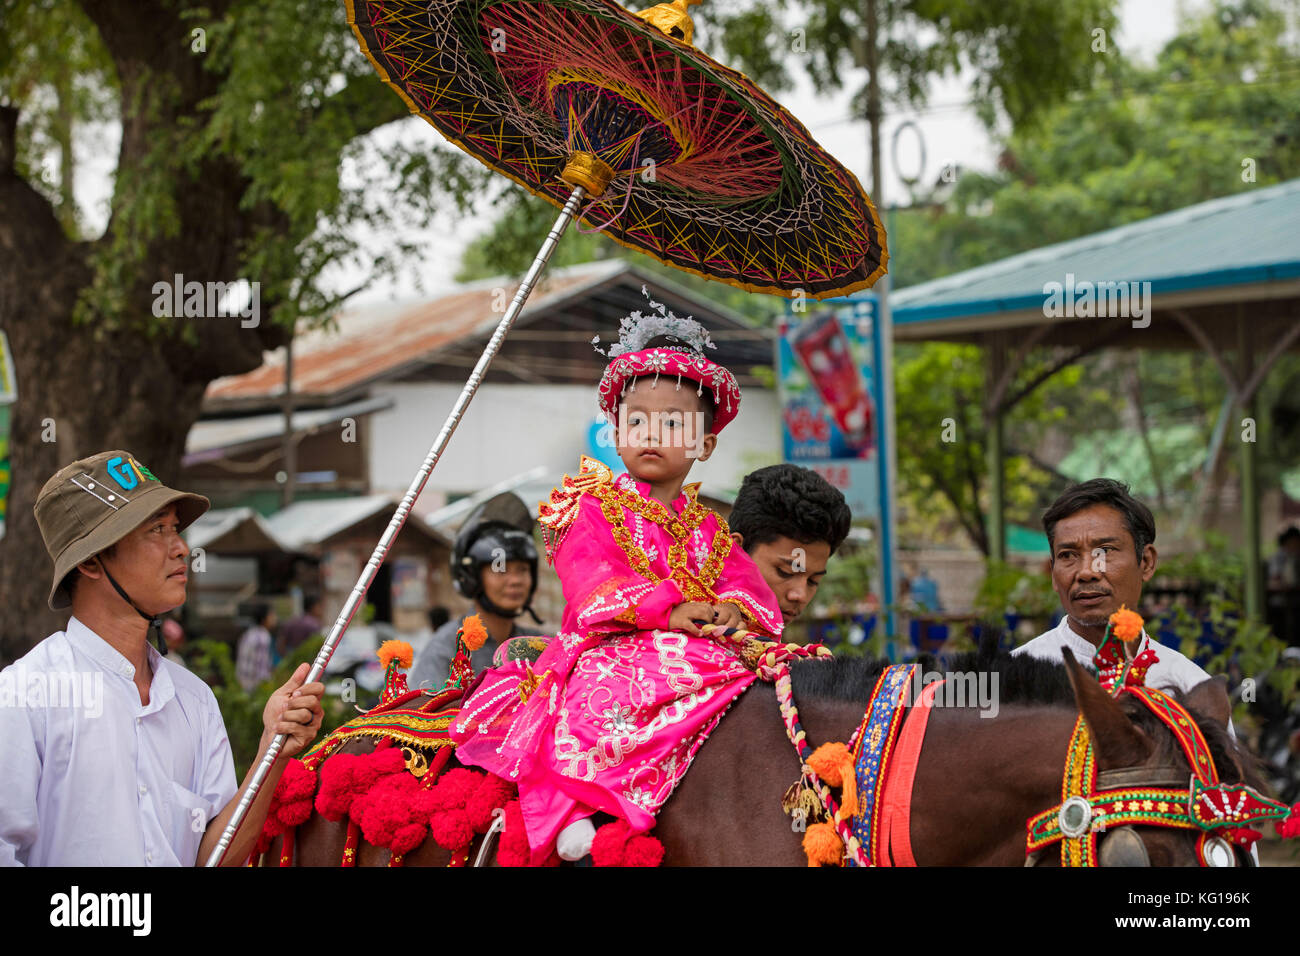 Traditional parade for Burmese child becoming a novice monk in the city Bagan / Pagan, Mandalay Region, Myanmar - Stock Image